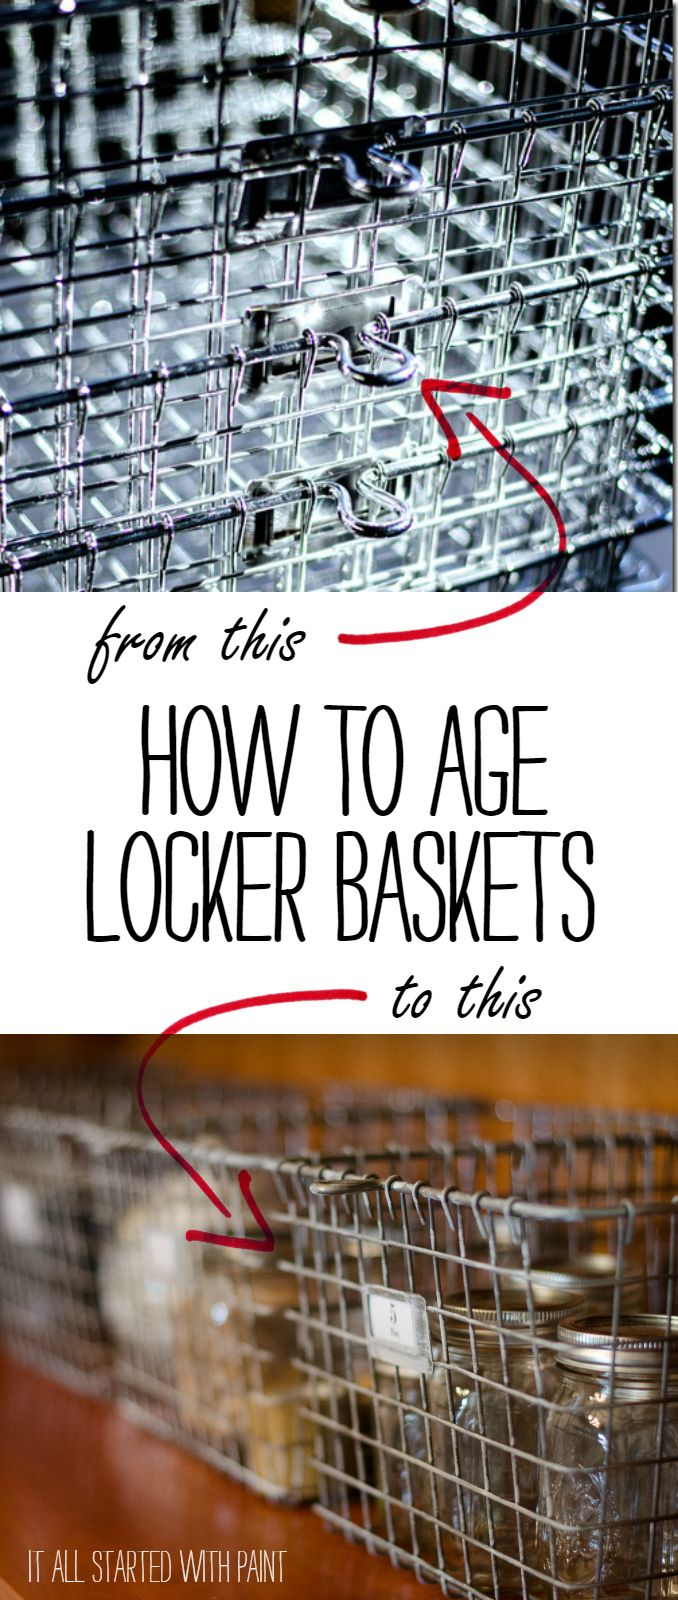 nike red shoes images How To Turn Shiny  New Locker Baskets Into Aged  Vintage Look